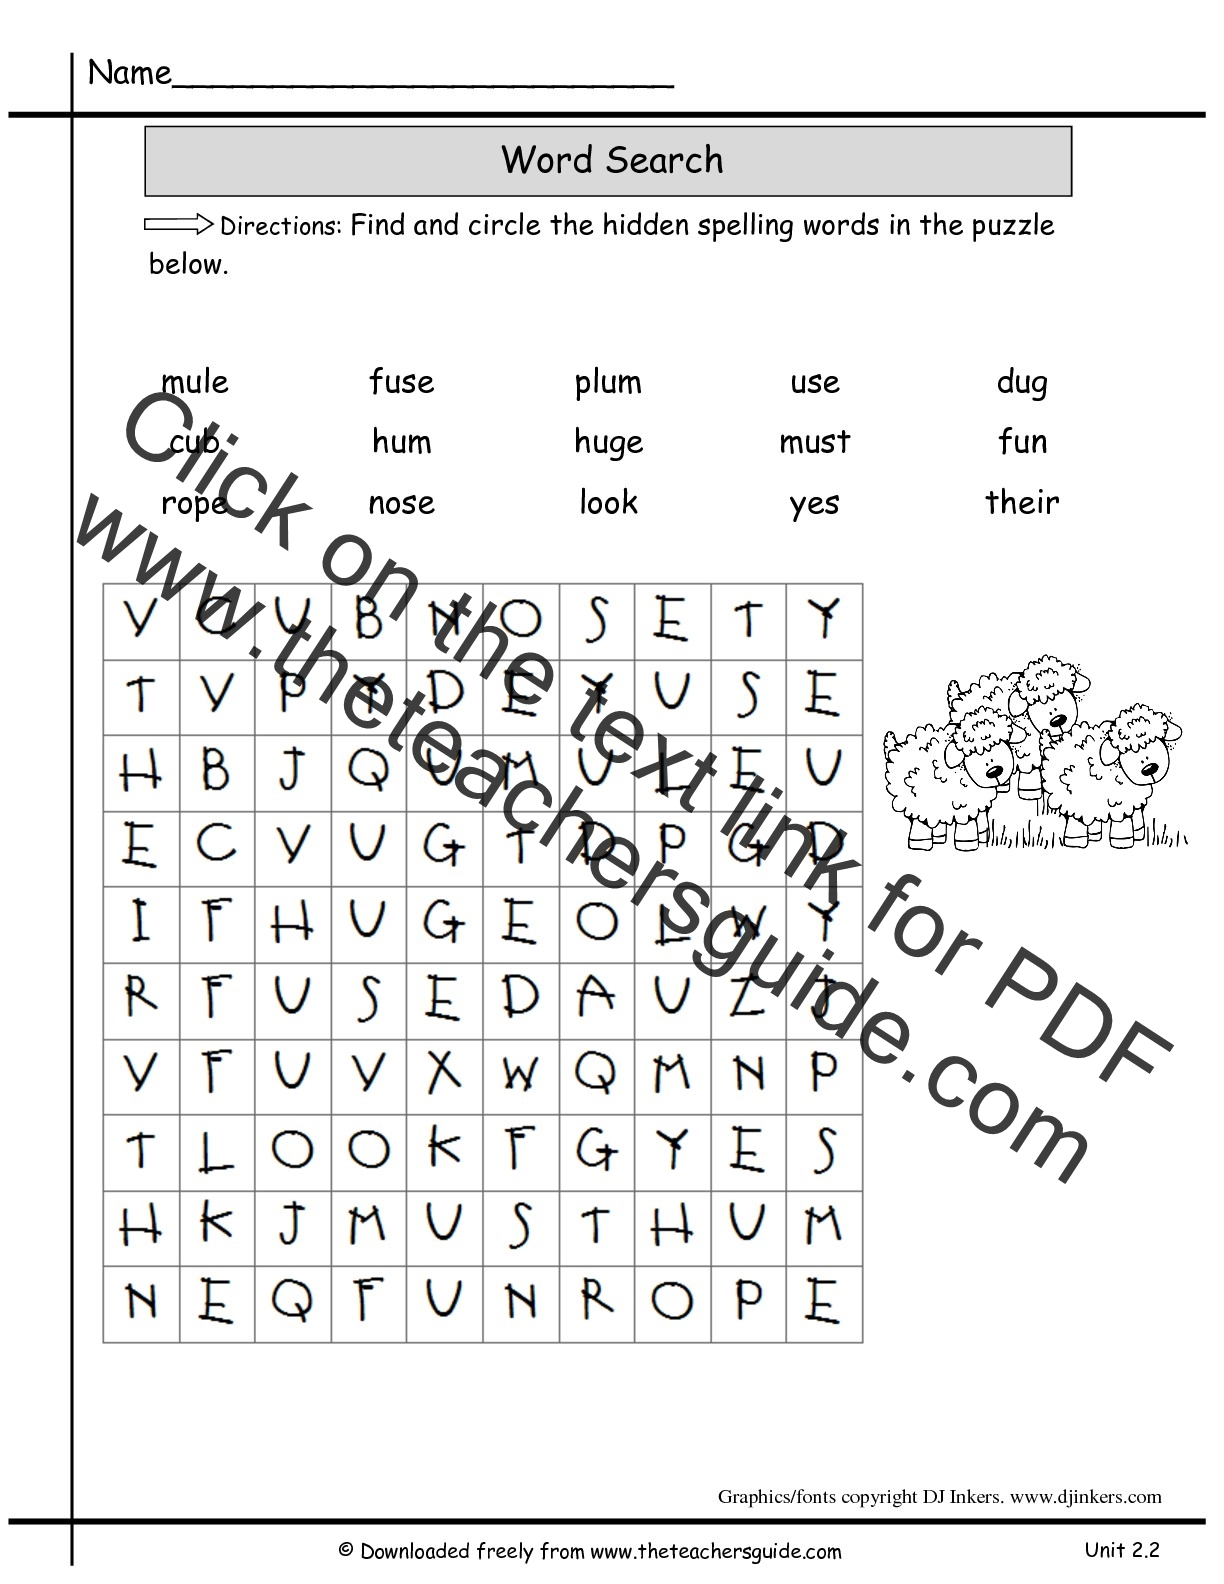 Printables Printable Worksheets For 2nd Graders worksheet worksheets for 2nd graders kerriwaller printables second grade language learning fun people puzzler